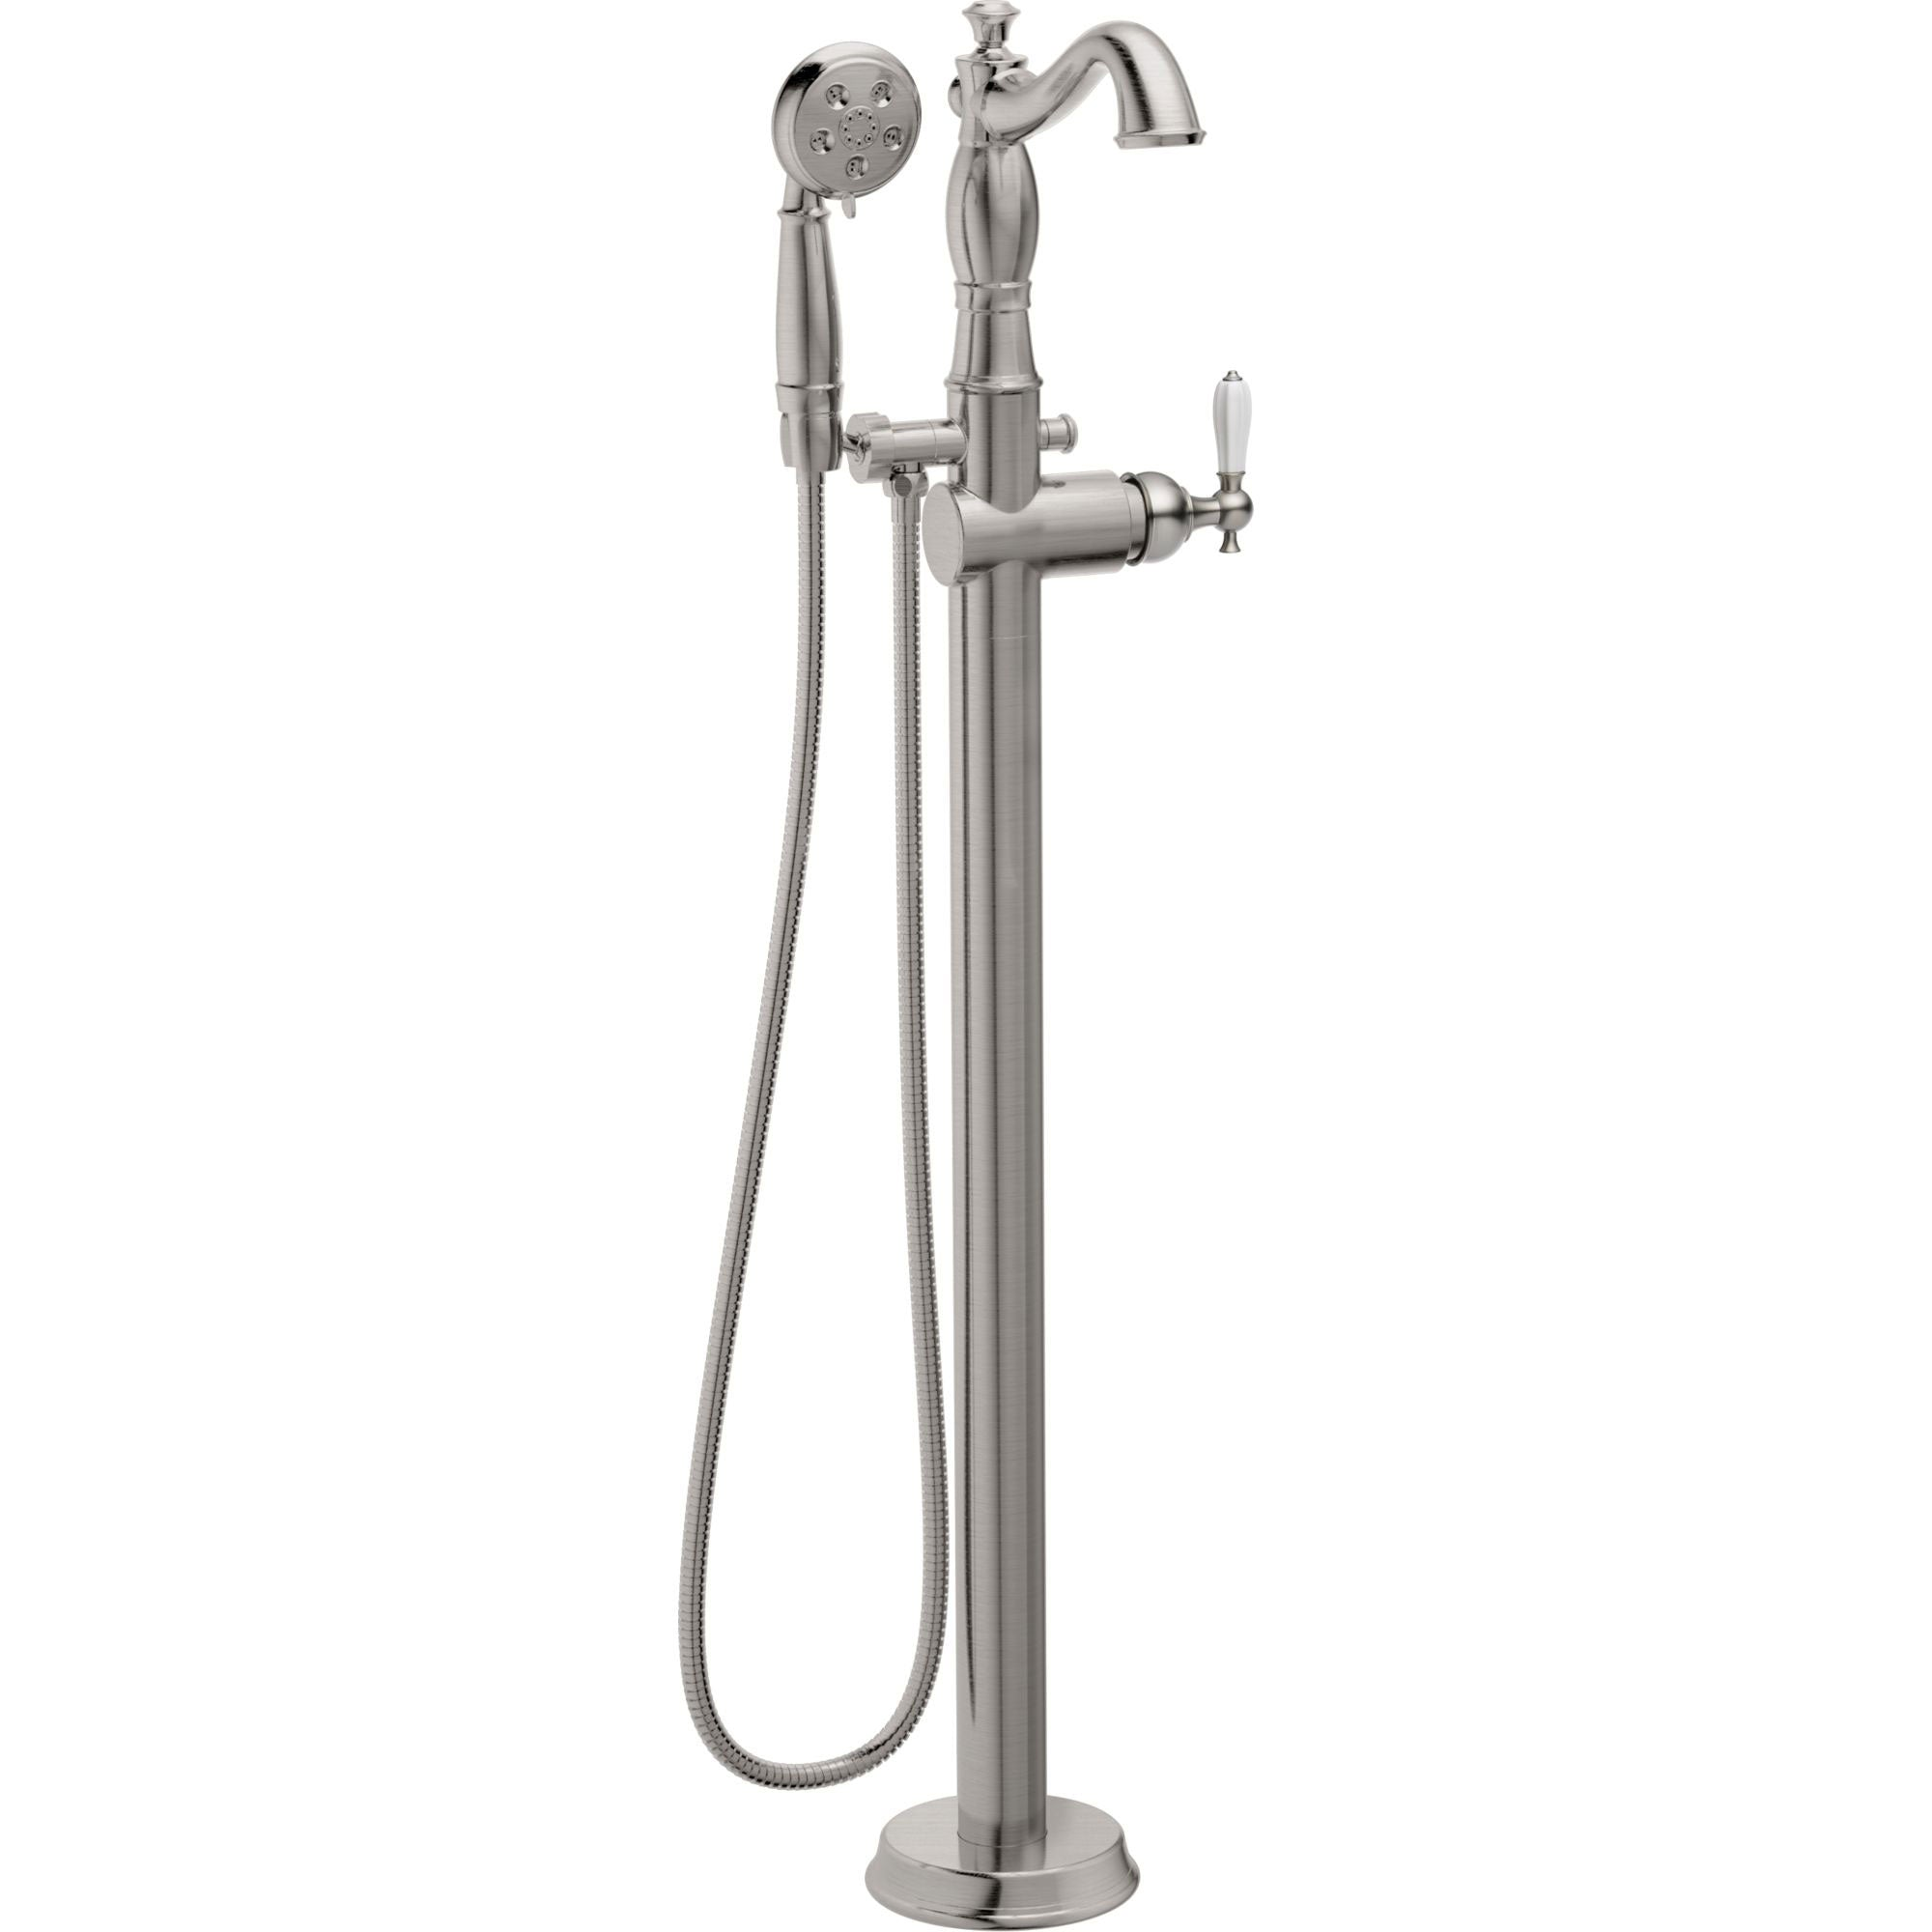 Delta Traditional Stainless Steel Finish Floor Mount Tub Filler Faucet with Hand Shower Spray INCLUDES Valve and Porcelain Lever Handle D1065V